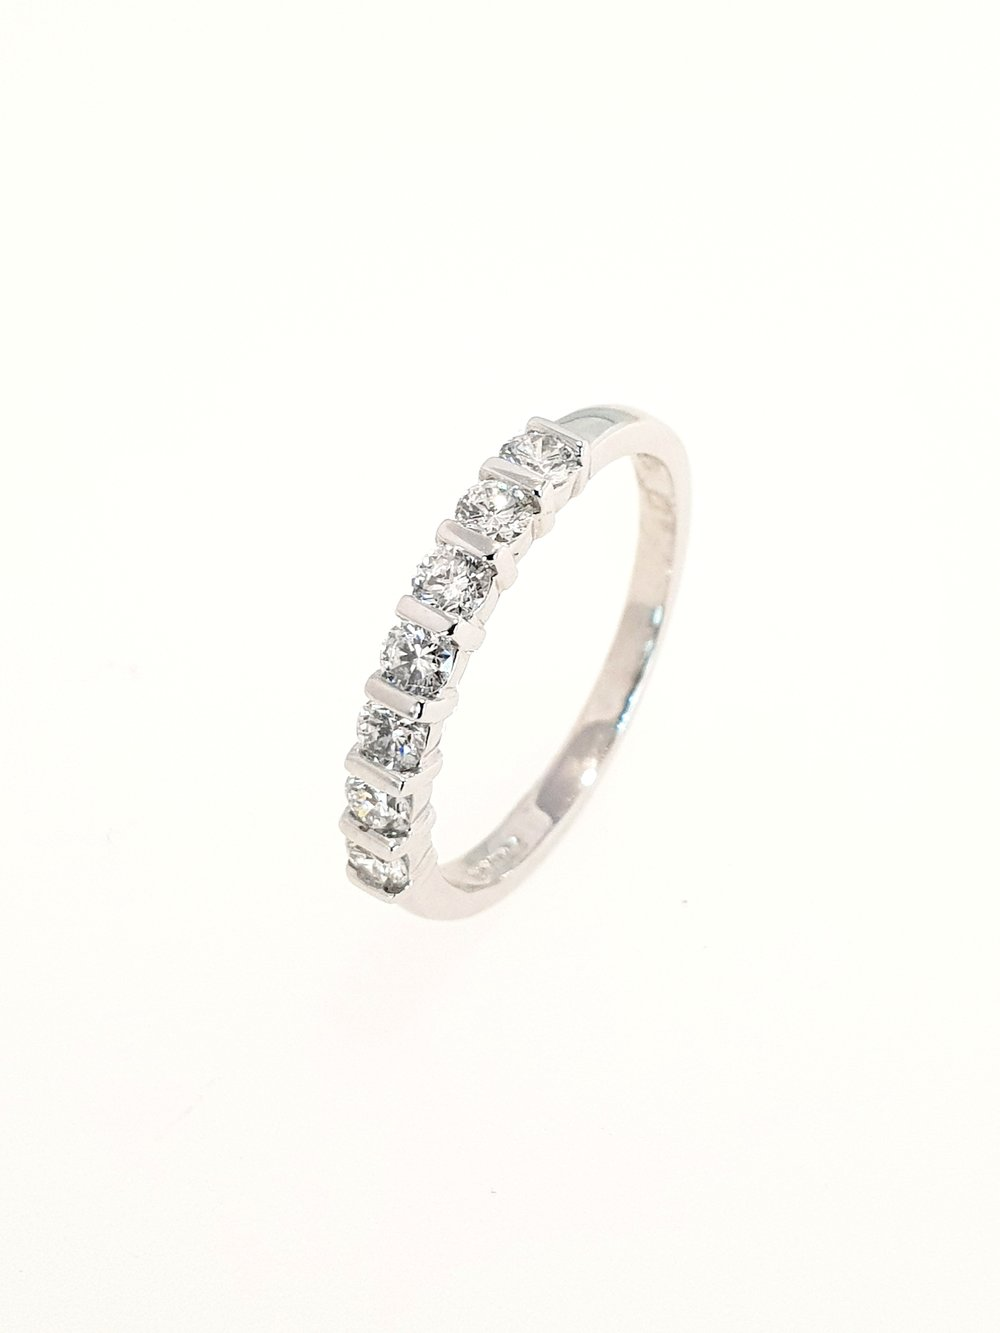 7 Stone Eternity Ring, Bar Set, 18ct White Gold  .49 Total Carat Weight  Stock Code: N8604  £1450